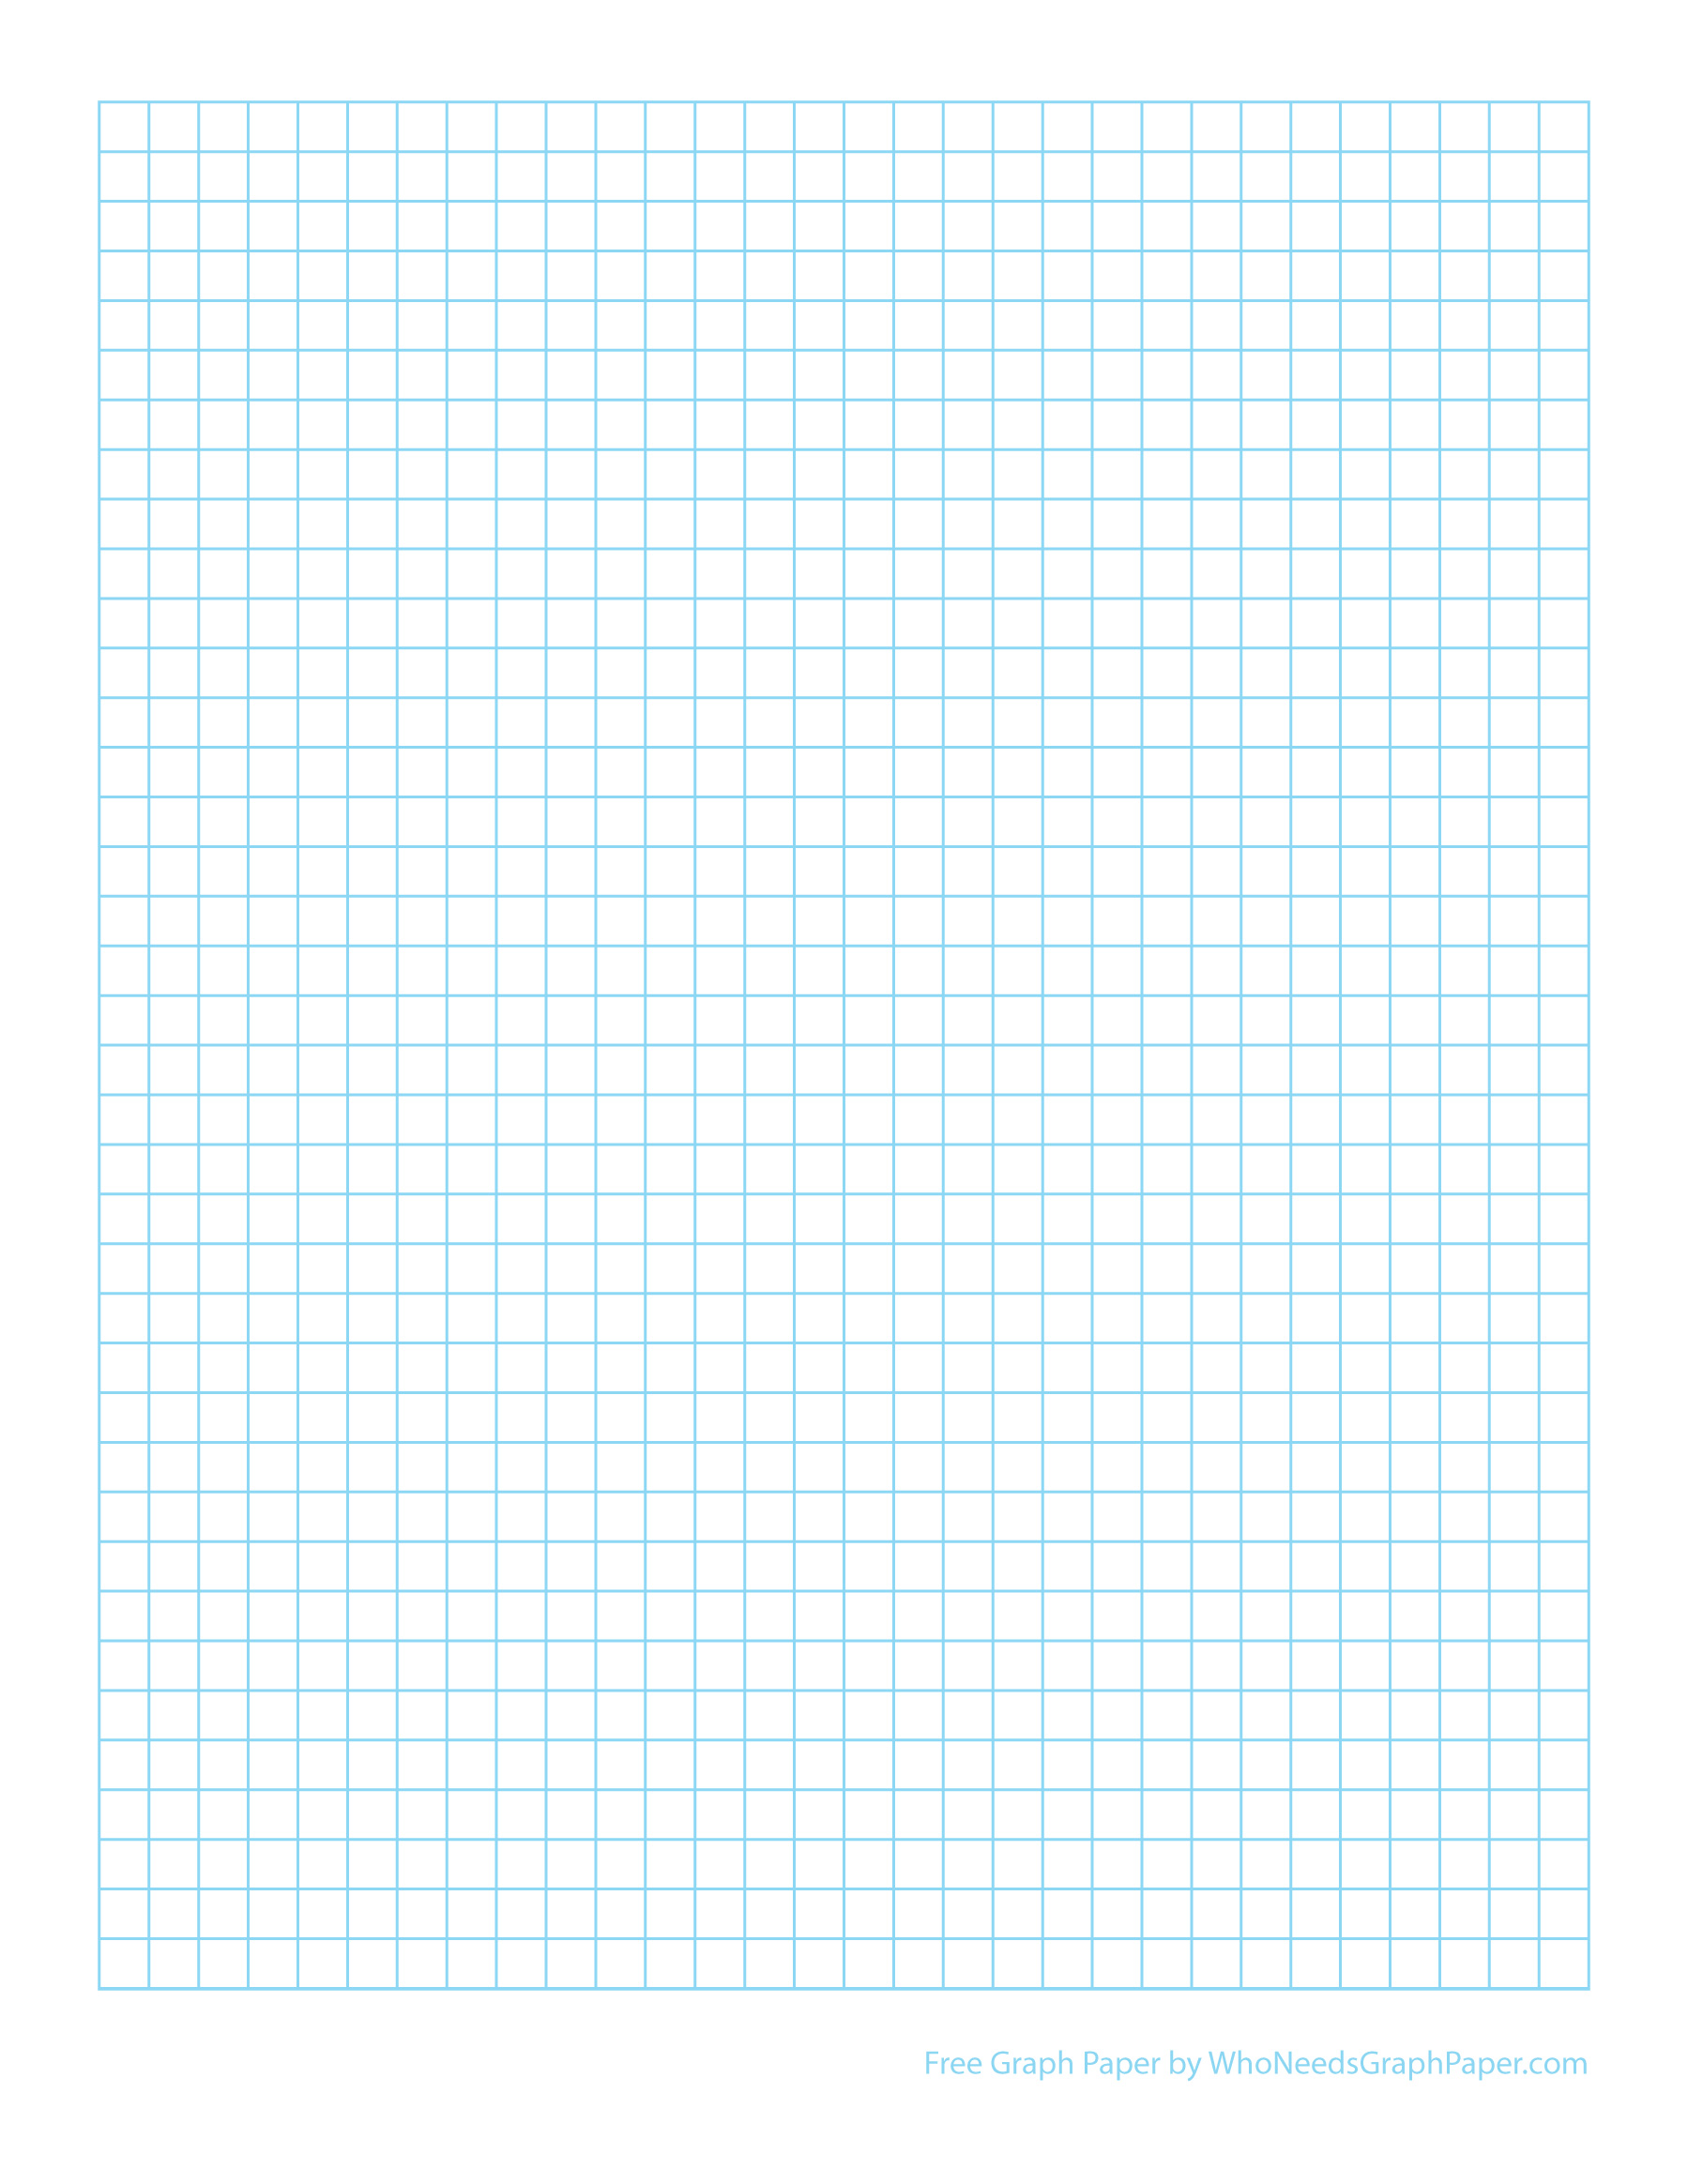 worksheet Printable Graph Paper Free free graph paper